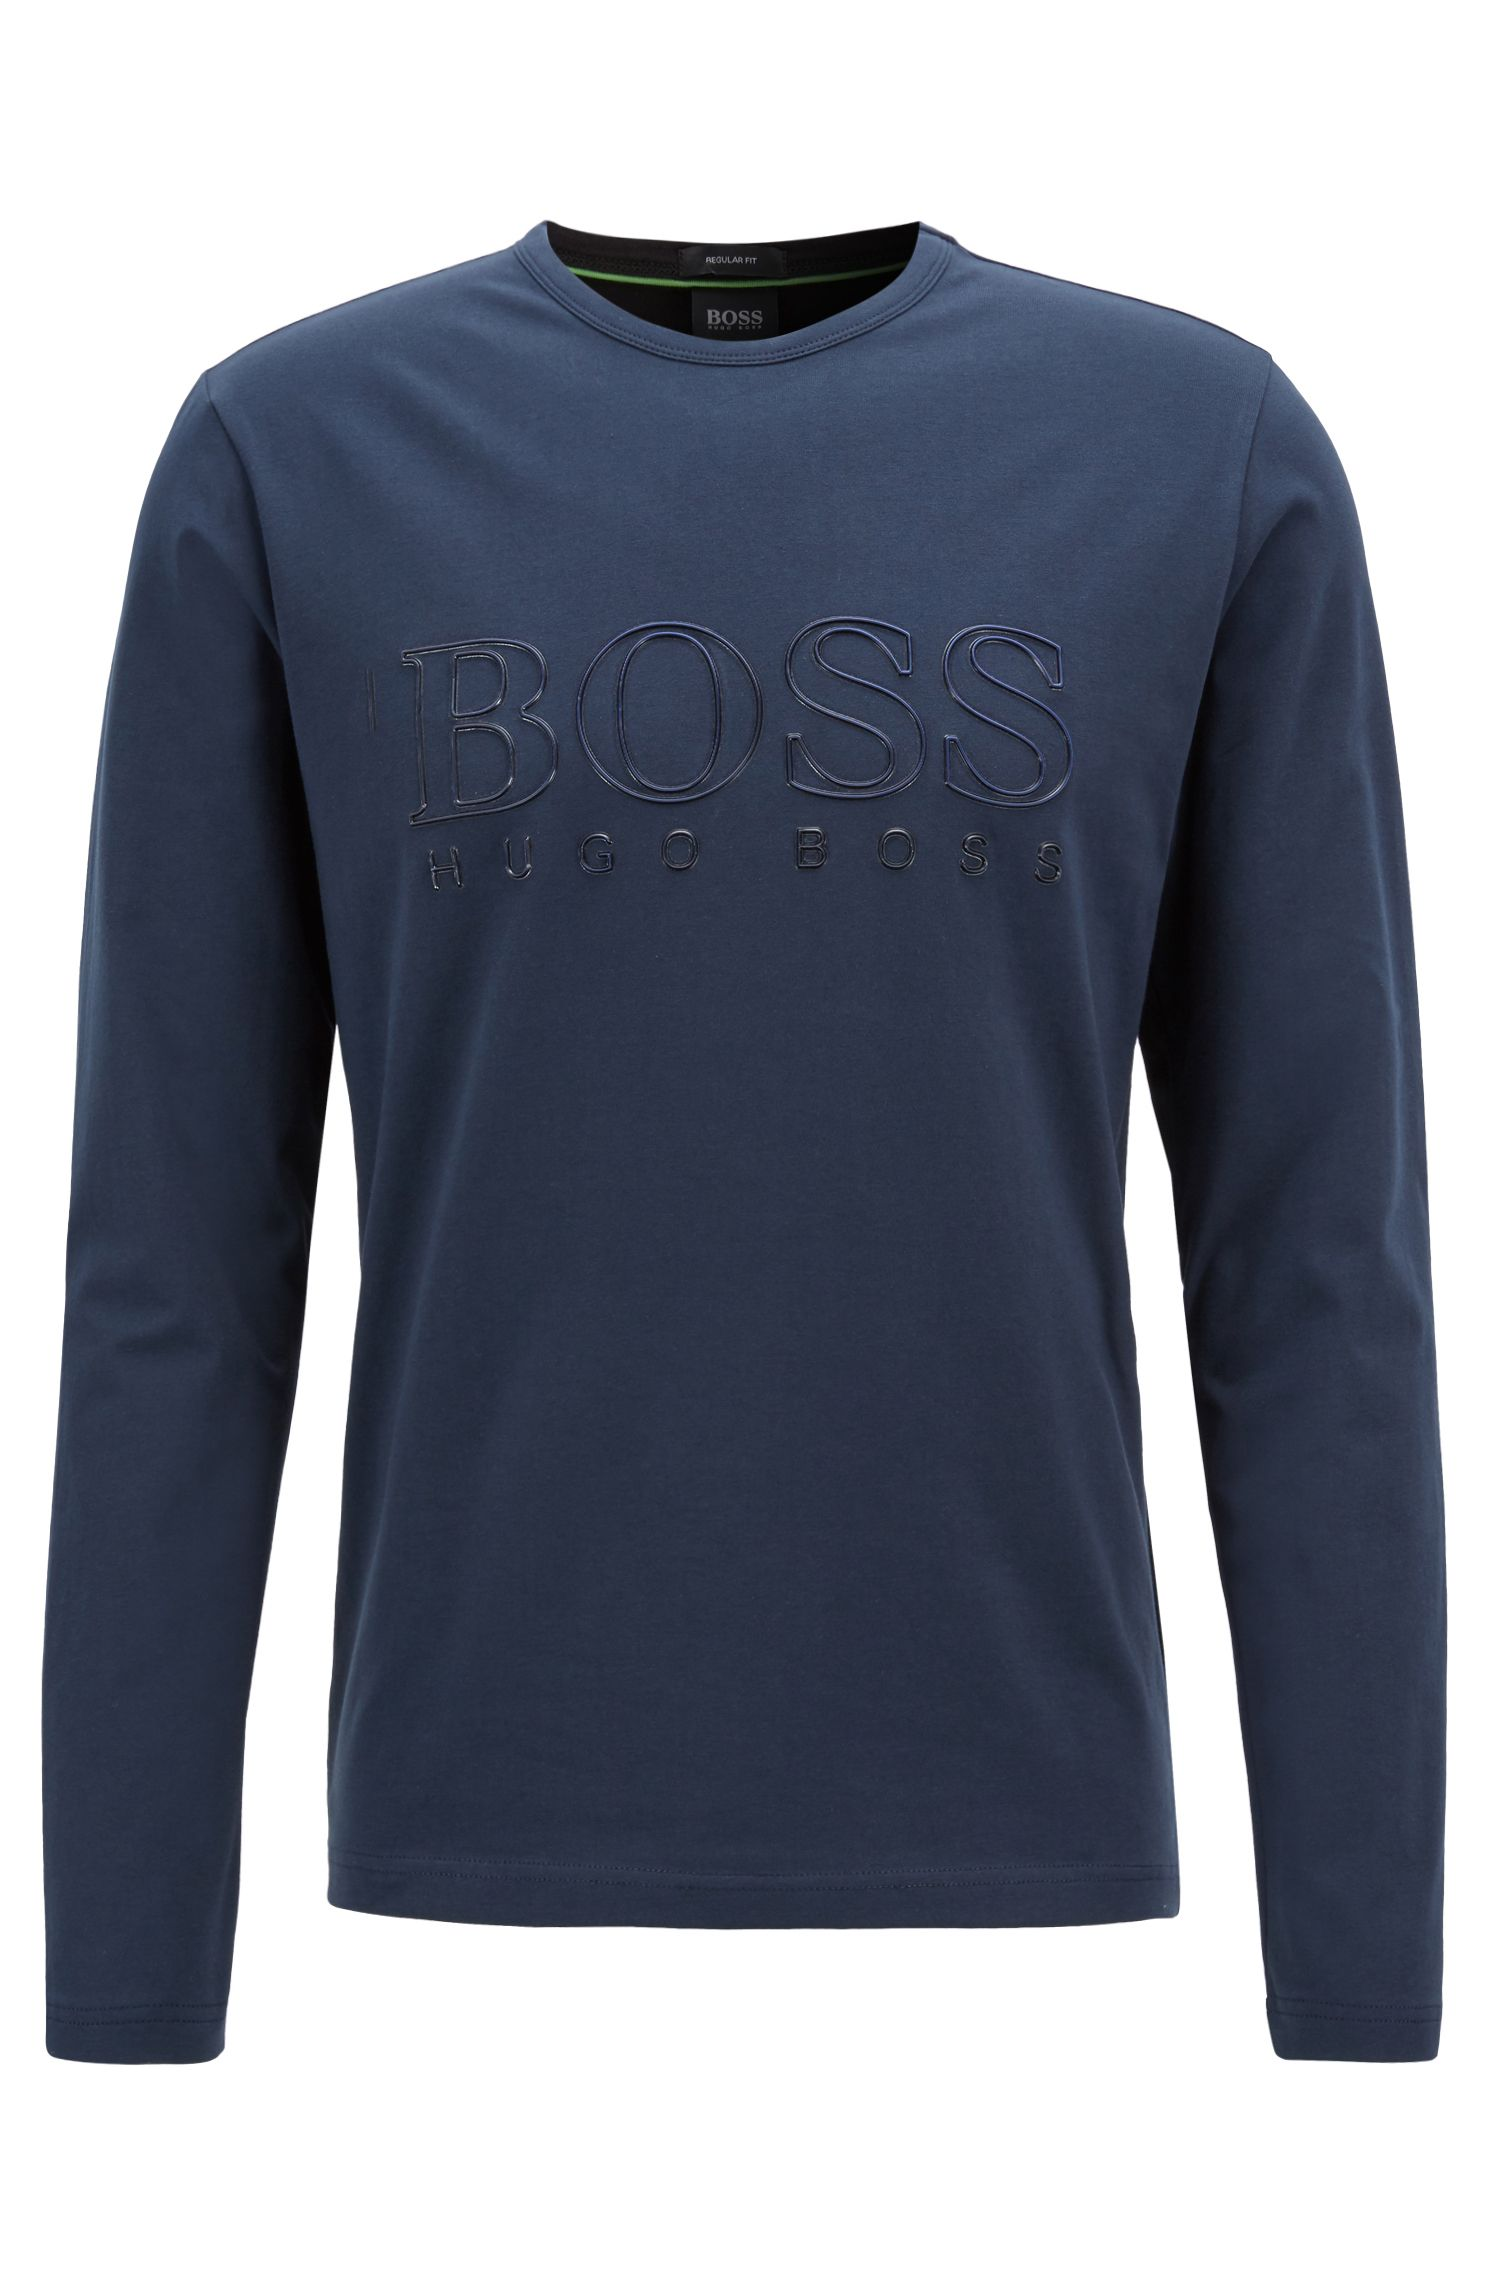 Long-sleeved T-shirt in stretch cotton with reflective logo, Dark Blue